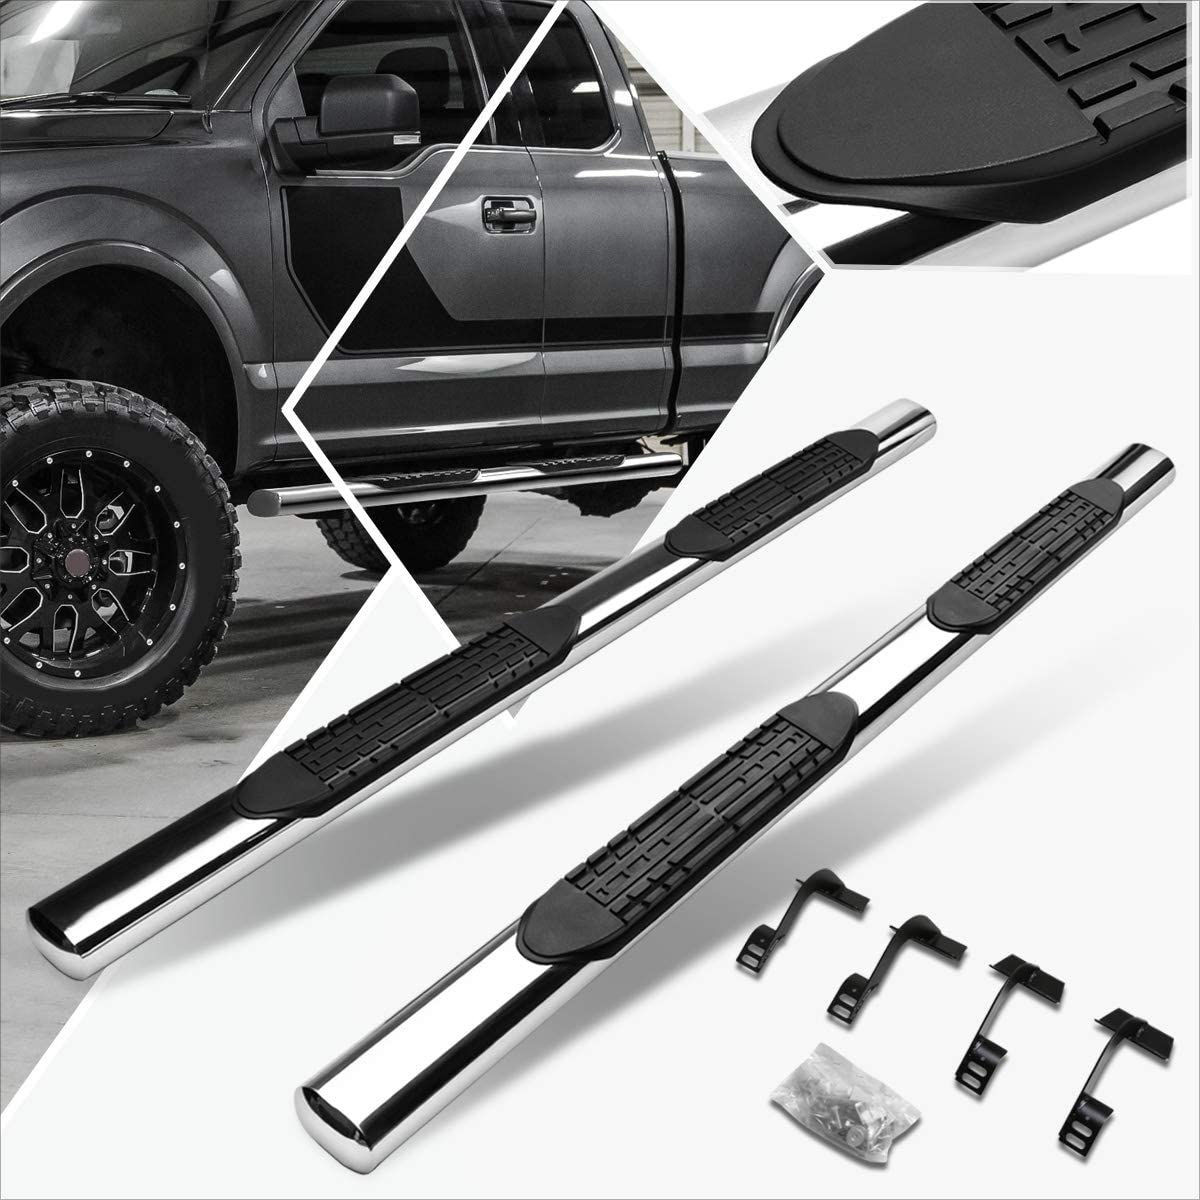 5 Black Curved Side Step Nerf Bar Running Board Replacement for Ford F-150 F-250 F-350 Extended Cab 15-20